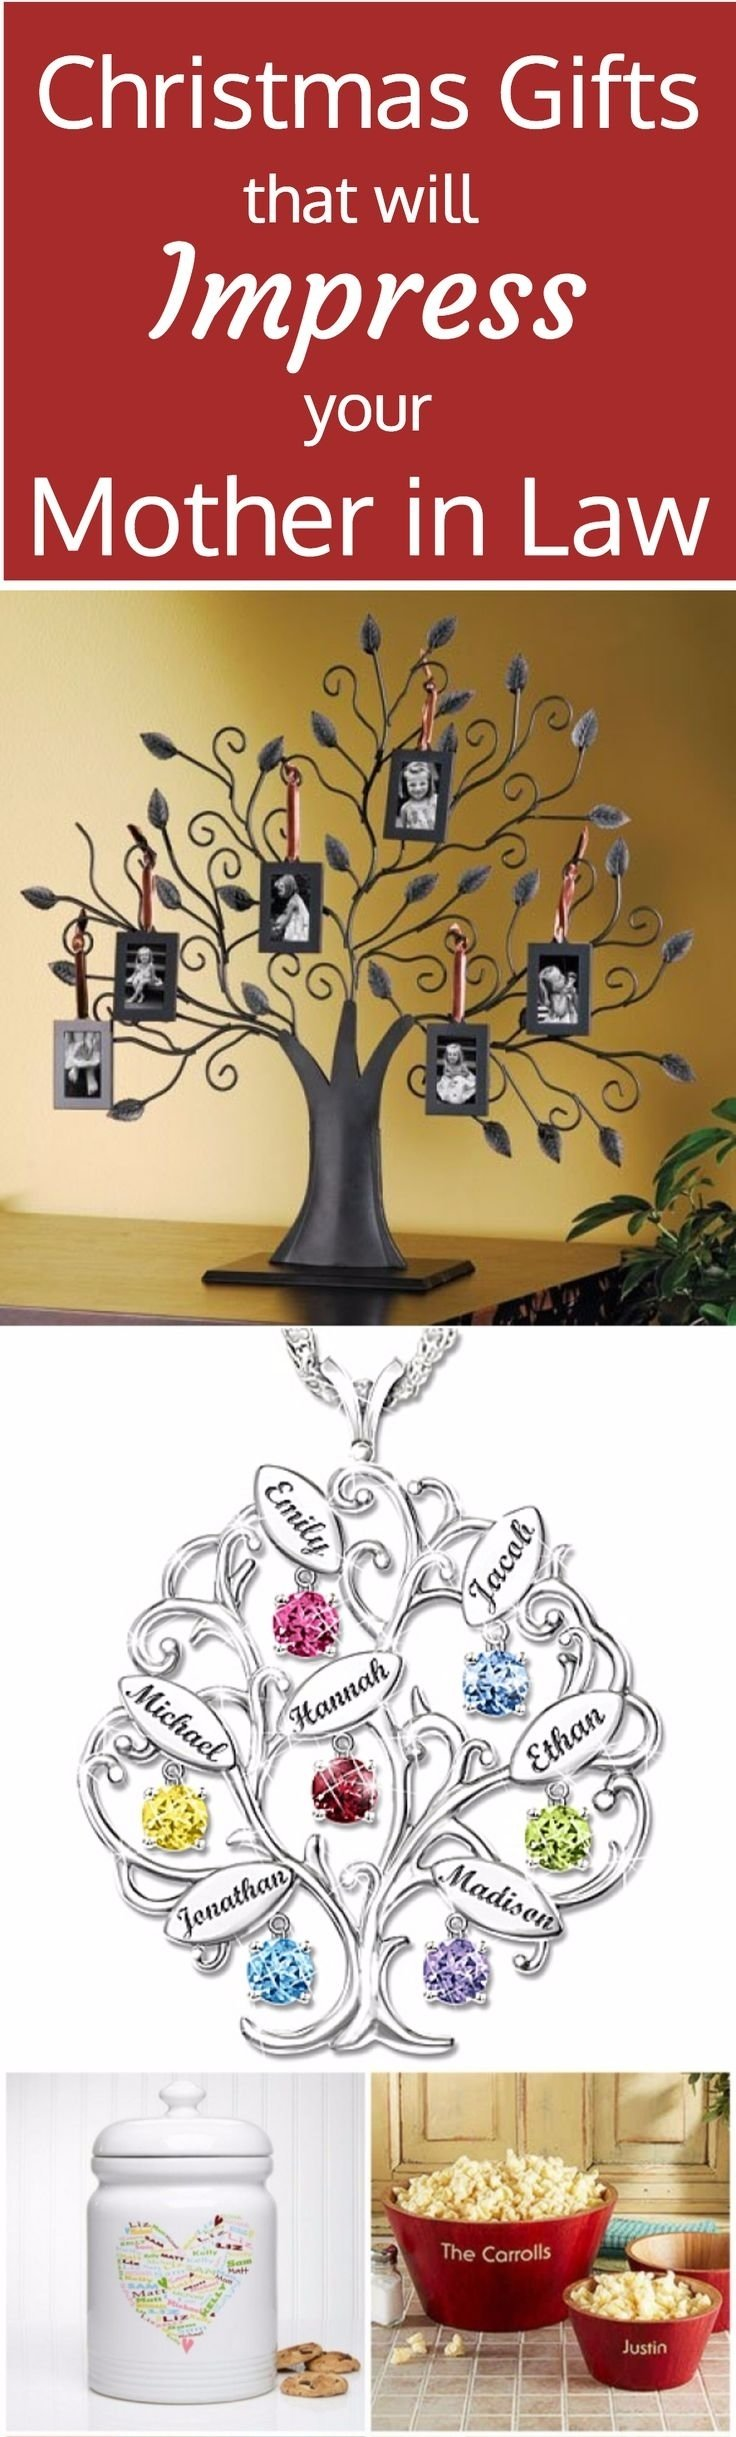 10 awesome gift idea for mother in law 347 best what to get your mother in - What To Get Your Mother In Law For Christmas